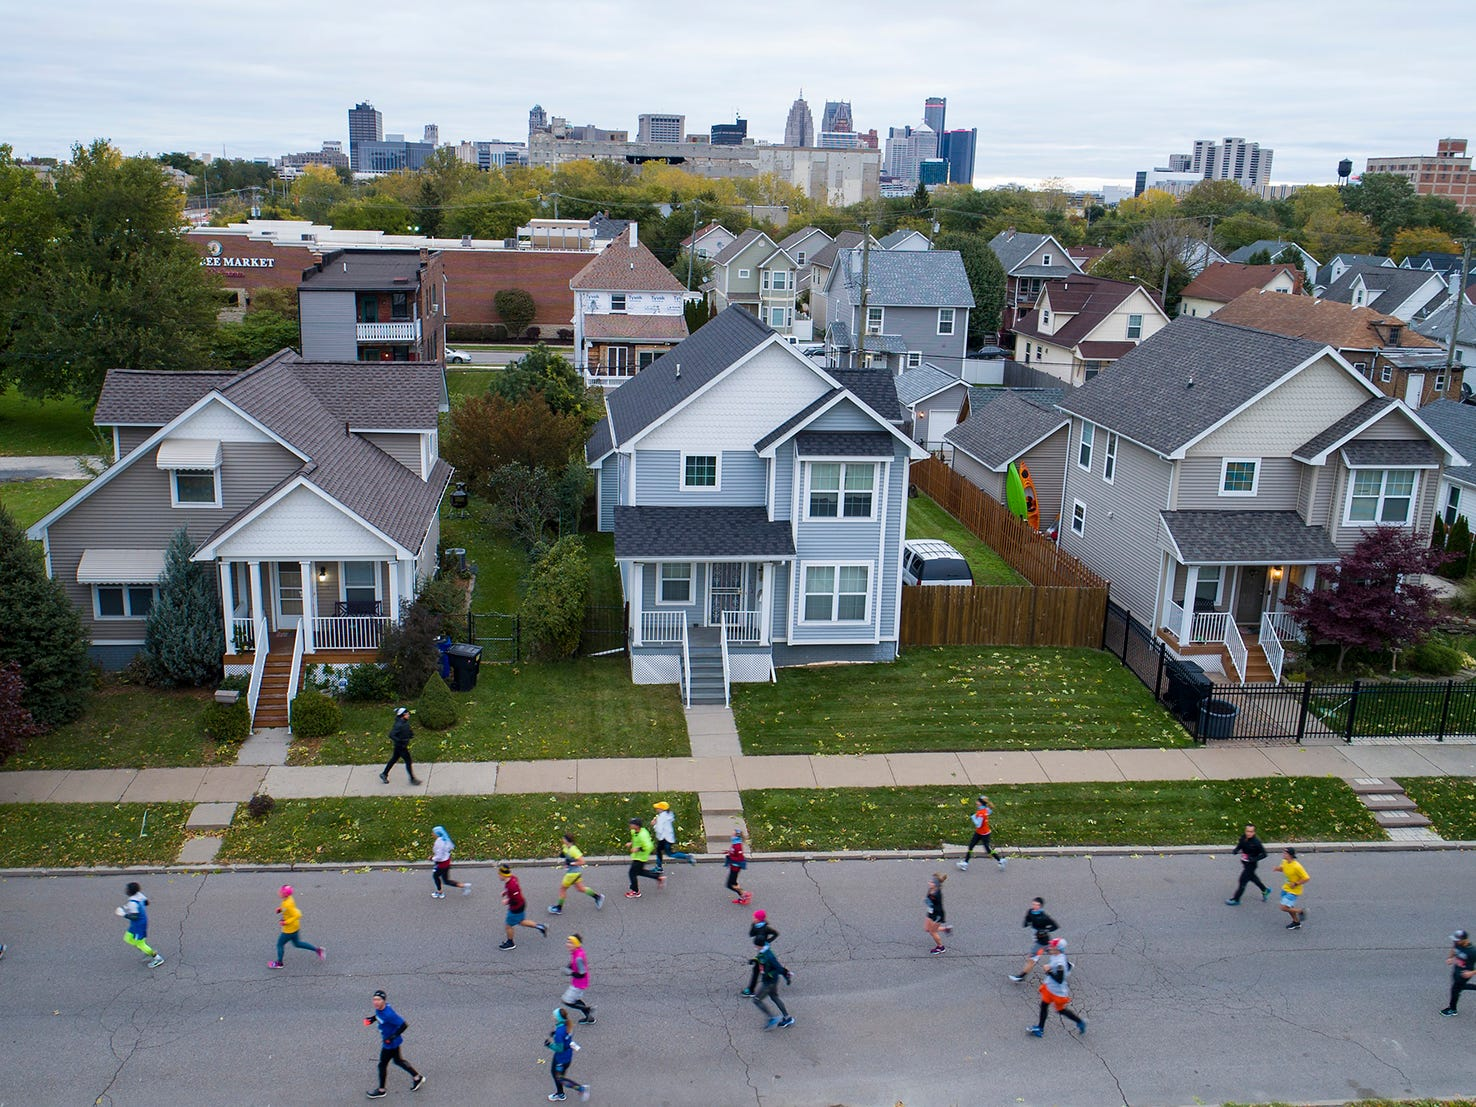 Marathoners run through Mexican Town near 18th and Bagley during the 41st Annual Detroit Free Press/Chemical Bank Marathon in Detroit on Sunday. Oct. 21, 2018.